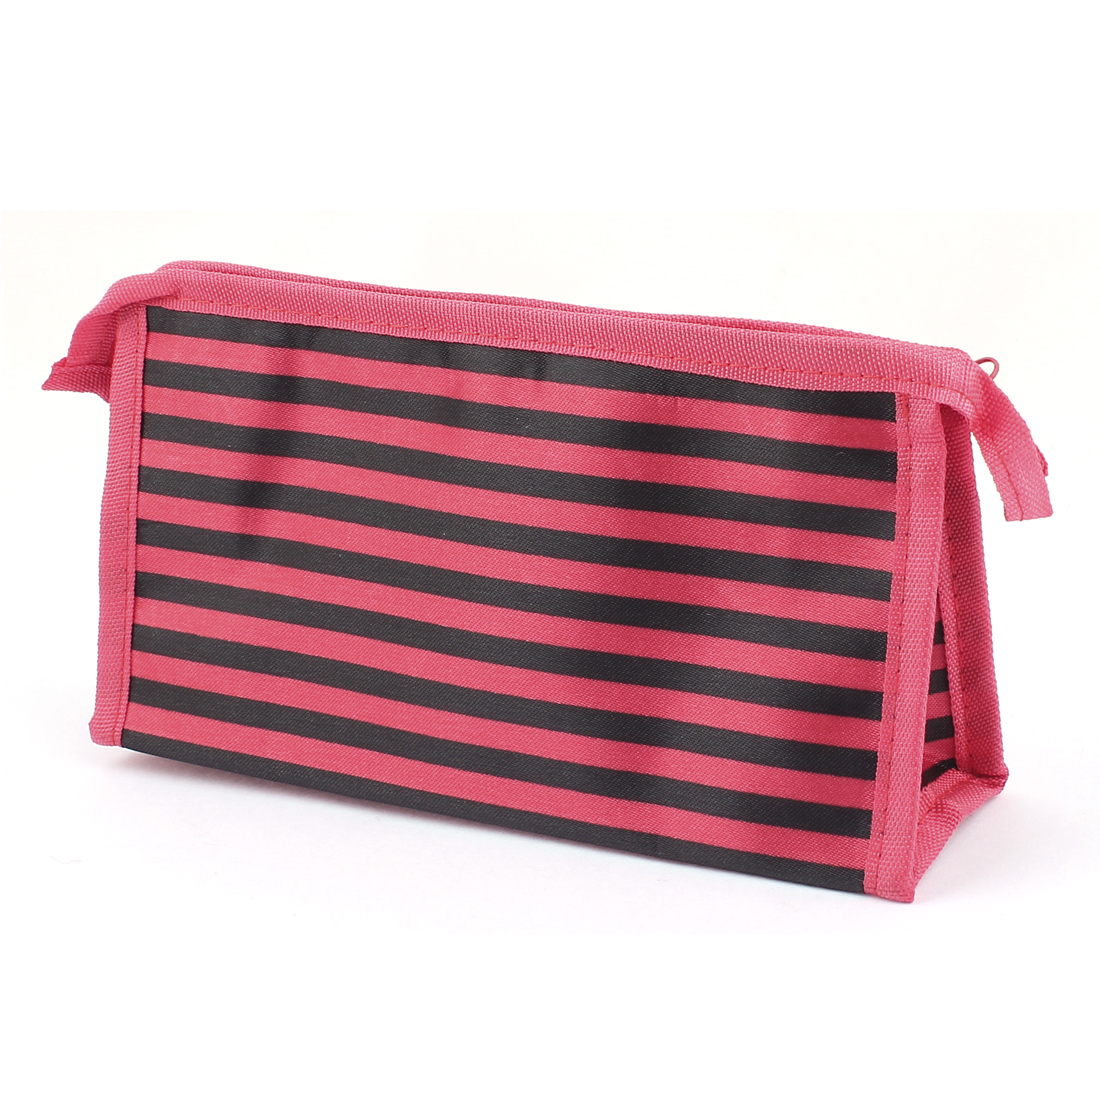 Travel Zip Up Striped Nylon Cosmetic Makeup Storage Bag Handgbag Pouch Black Red